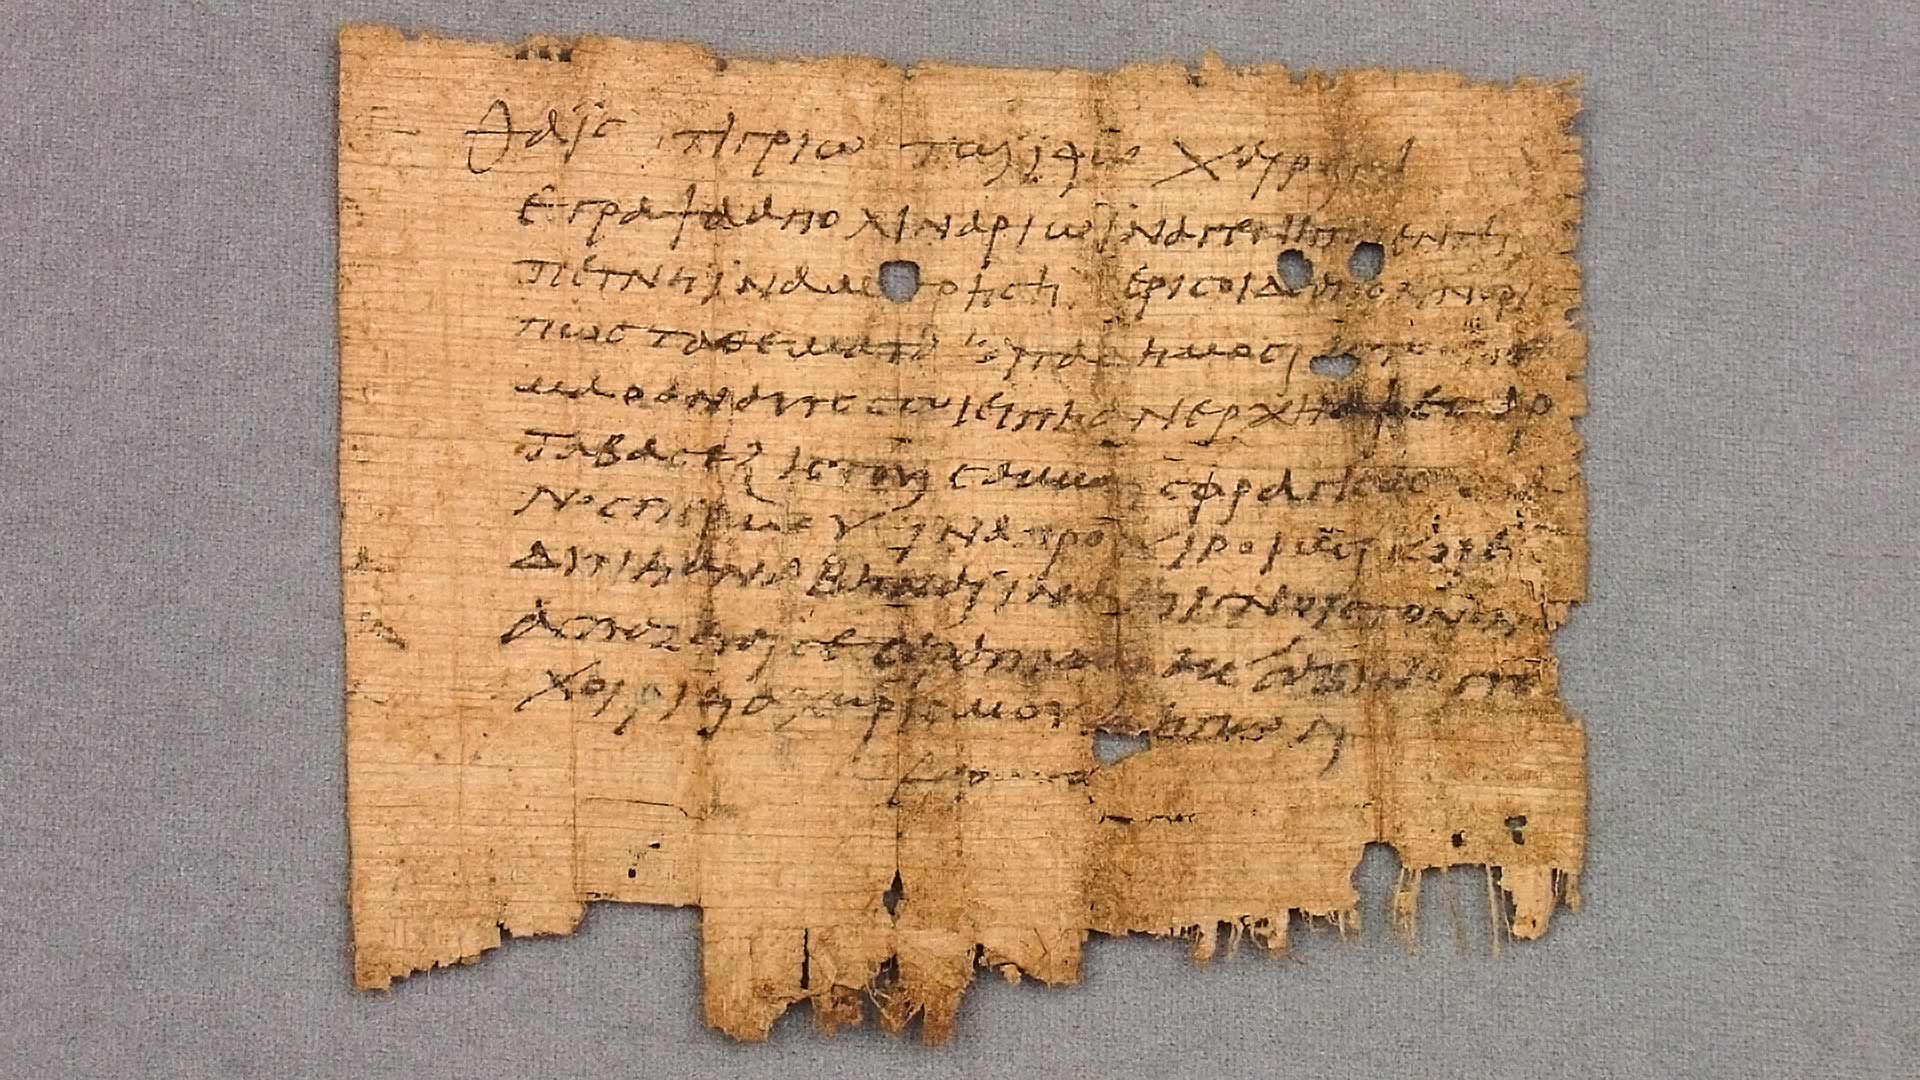 papyrus page with legible writing; tattered bottom edge